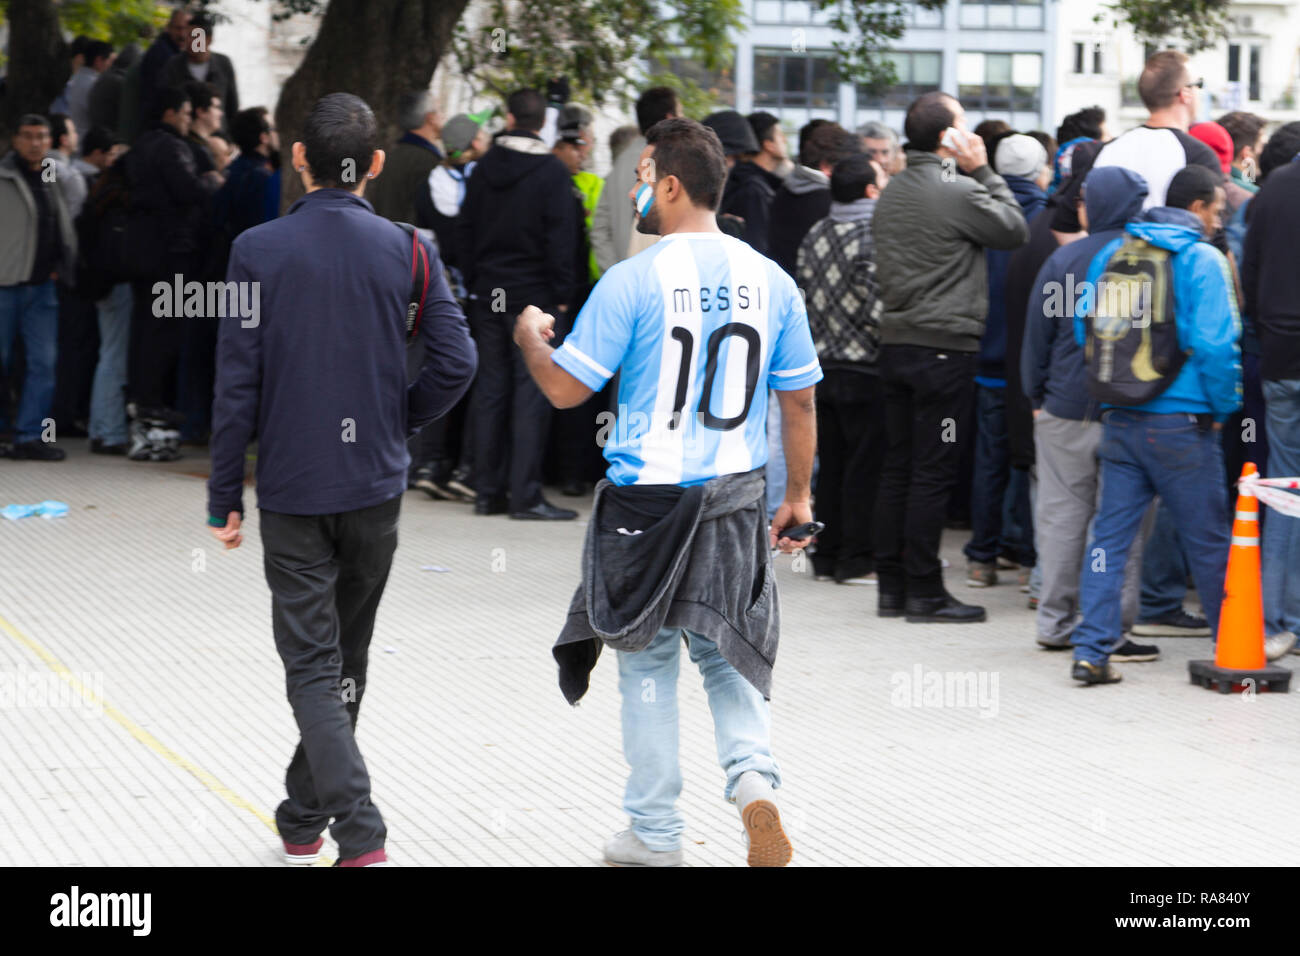 Buenos Aires State/Argentina 25/06/2014. Argentina soccer team fan wearing the Messi's t-shirt  during The soccer world cup 2014 Argentina vs Nigeria - Stock Image